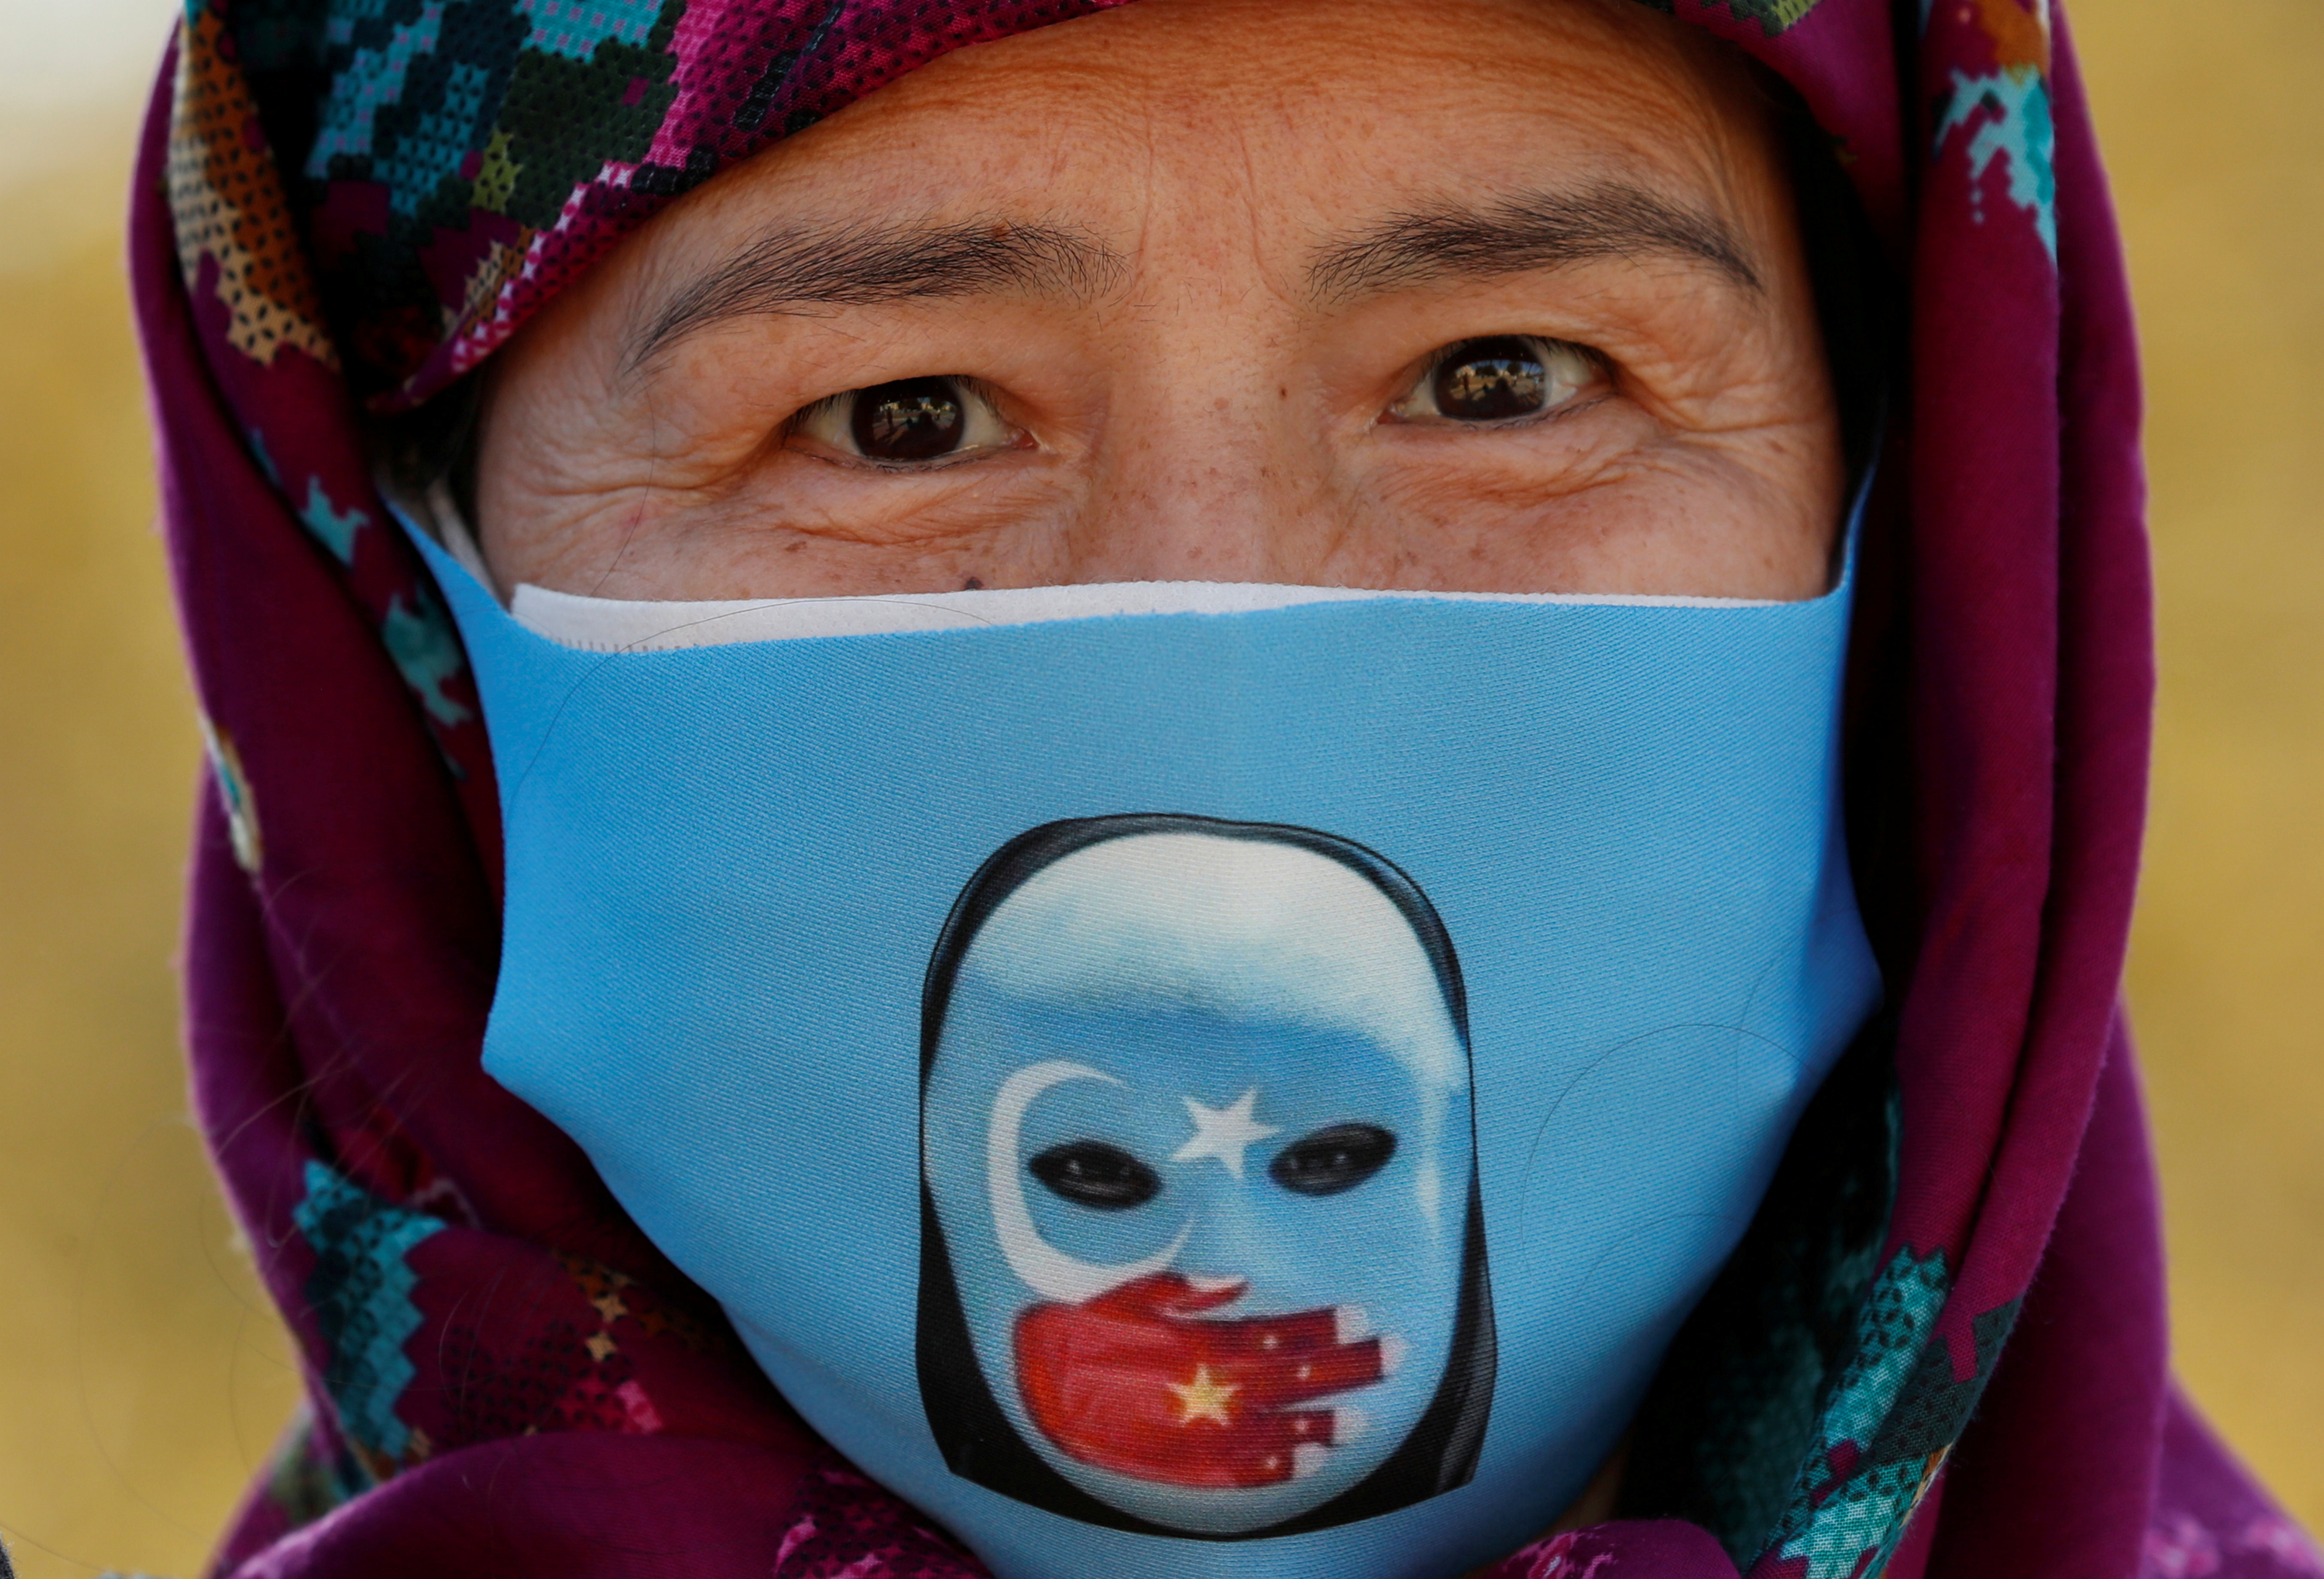 An Ethnic Uighur demonstrator wearing a protective face mask takes part in a protest against China, in Istanbul, Turkey October 1, 2020. REUTERS/Murad Sezer